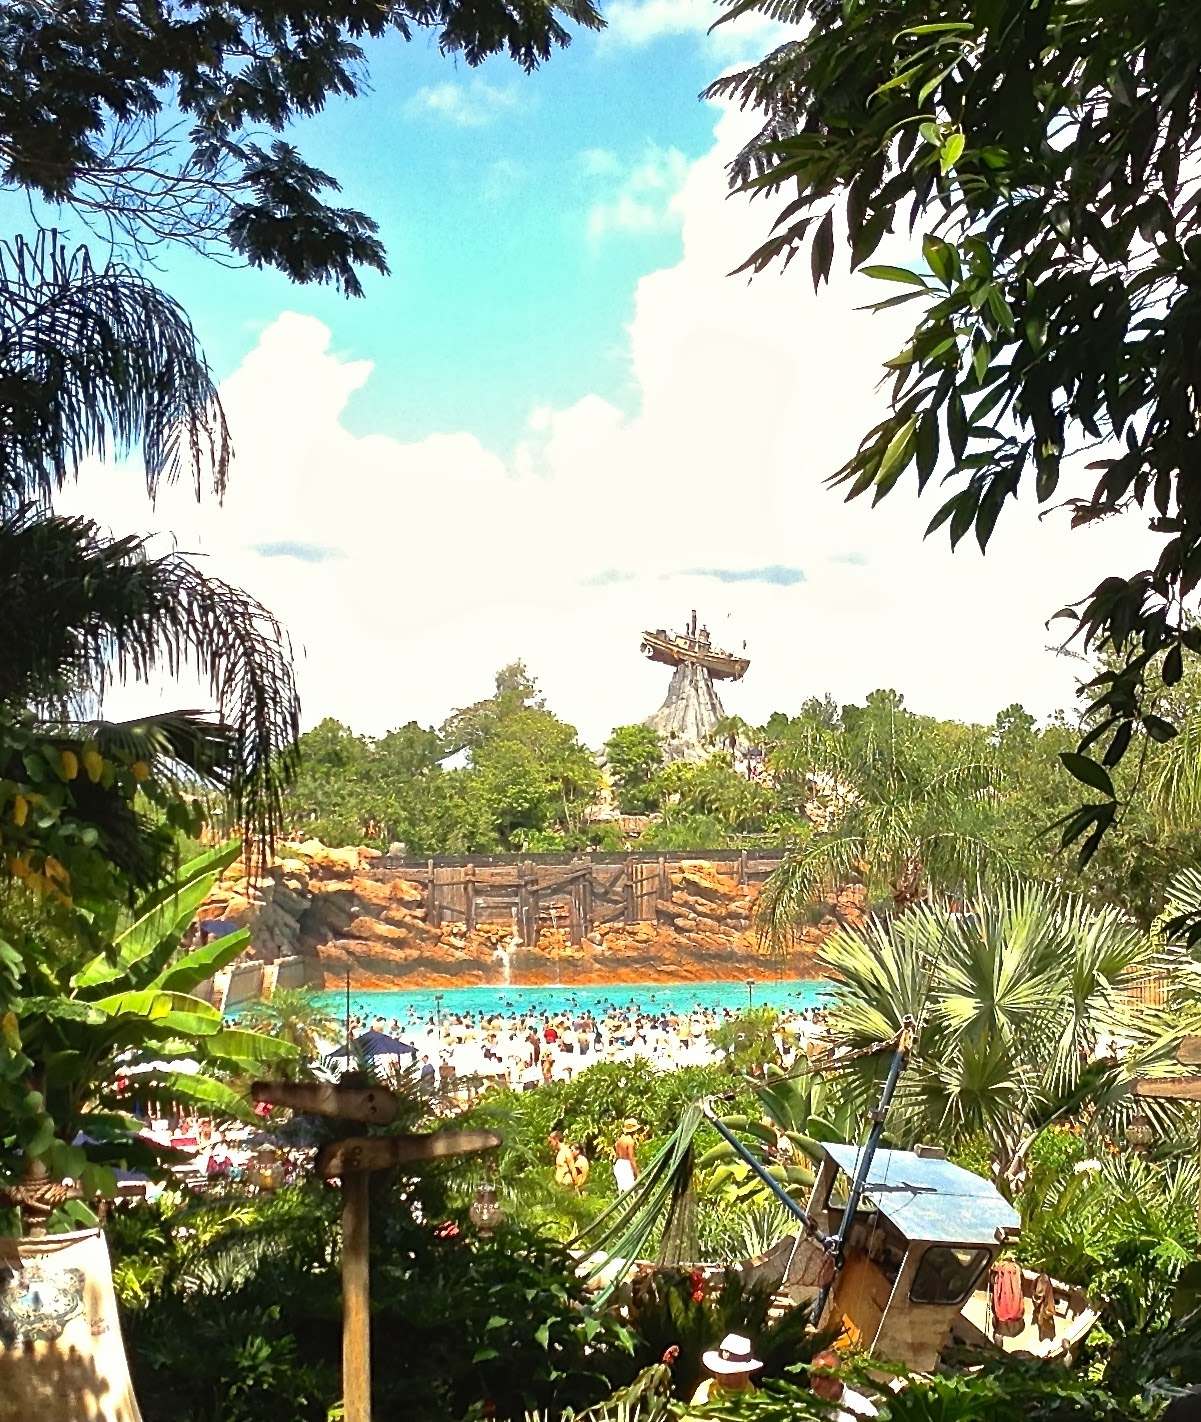 Typhoon Lagoon, Walt Disney World | Morgan's Milieu: A photo of the stranded boat at Typhoon Lagoon.